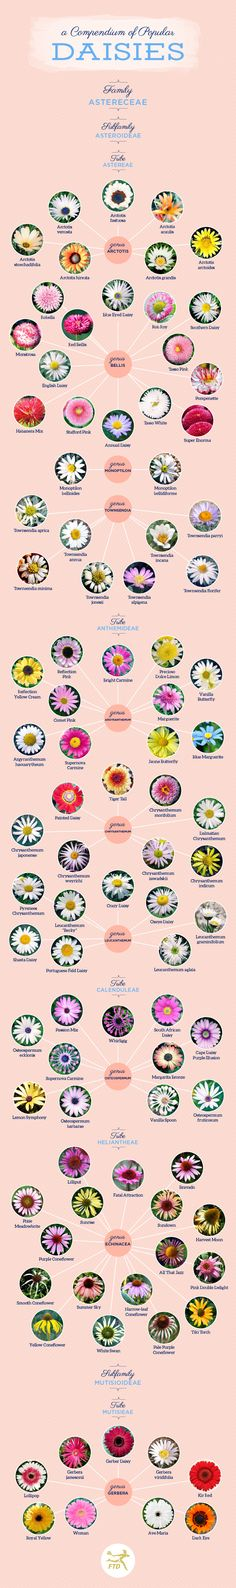 Types of Popular Daisies: A Visual Compendium